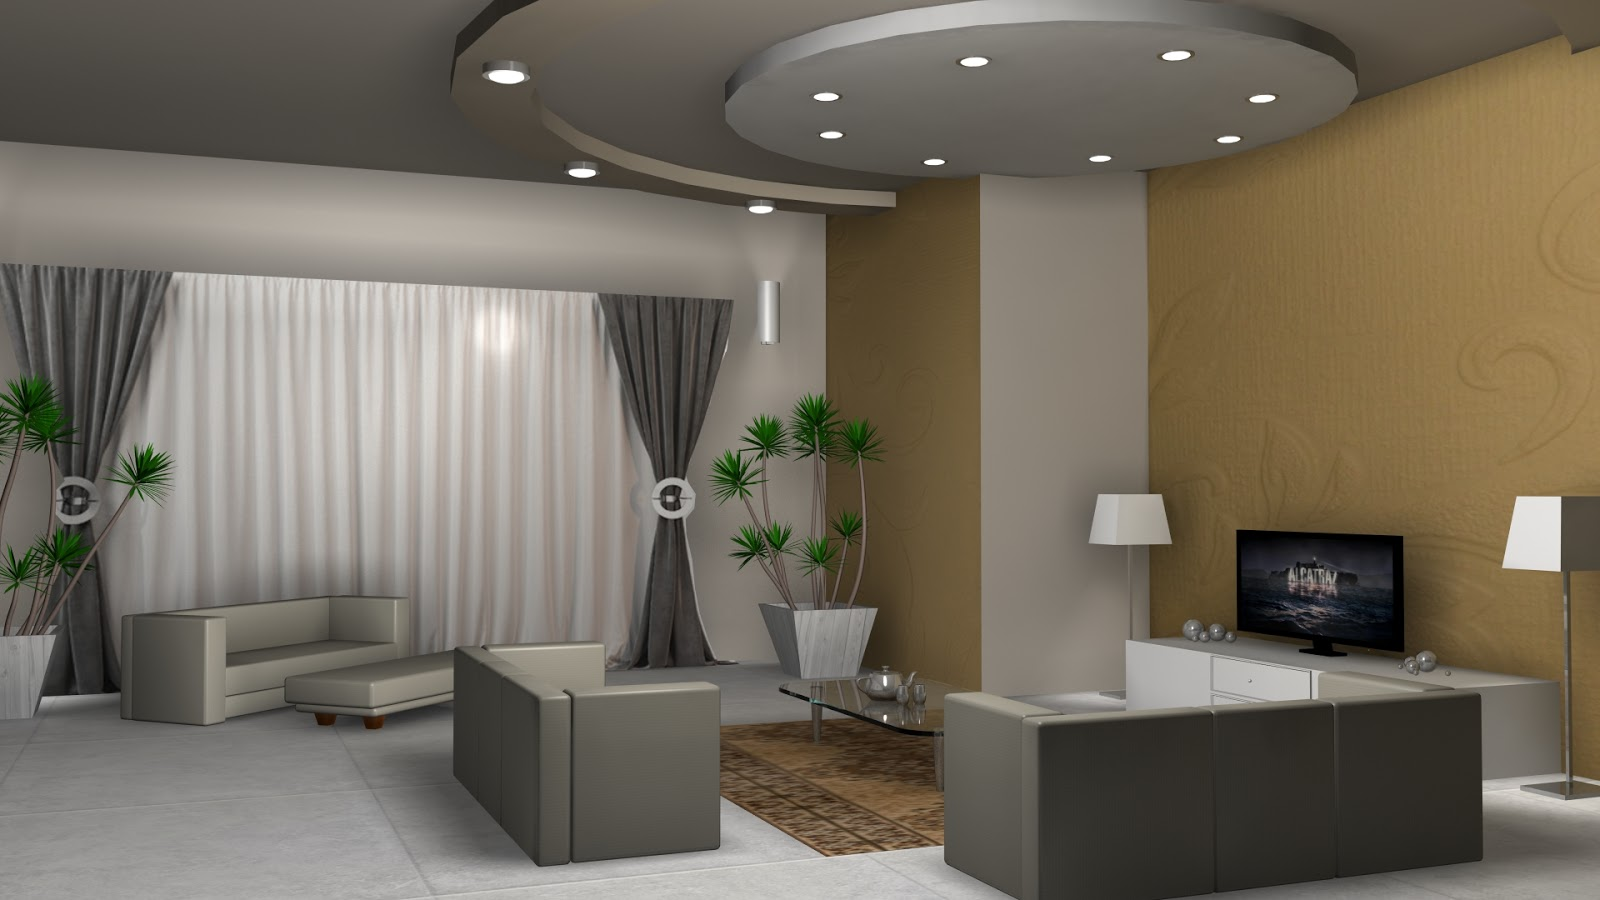 Sajid designs visiting room 3d design max for 3d room decoration